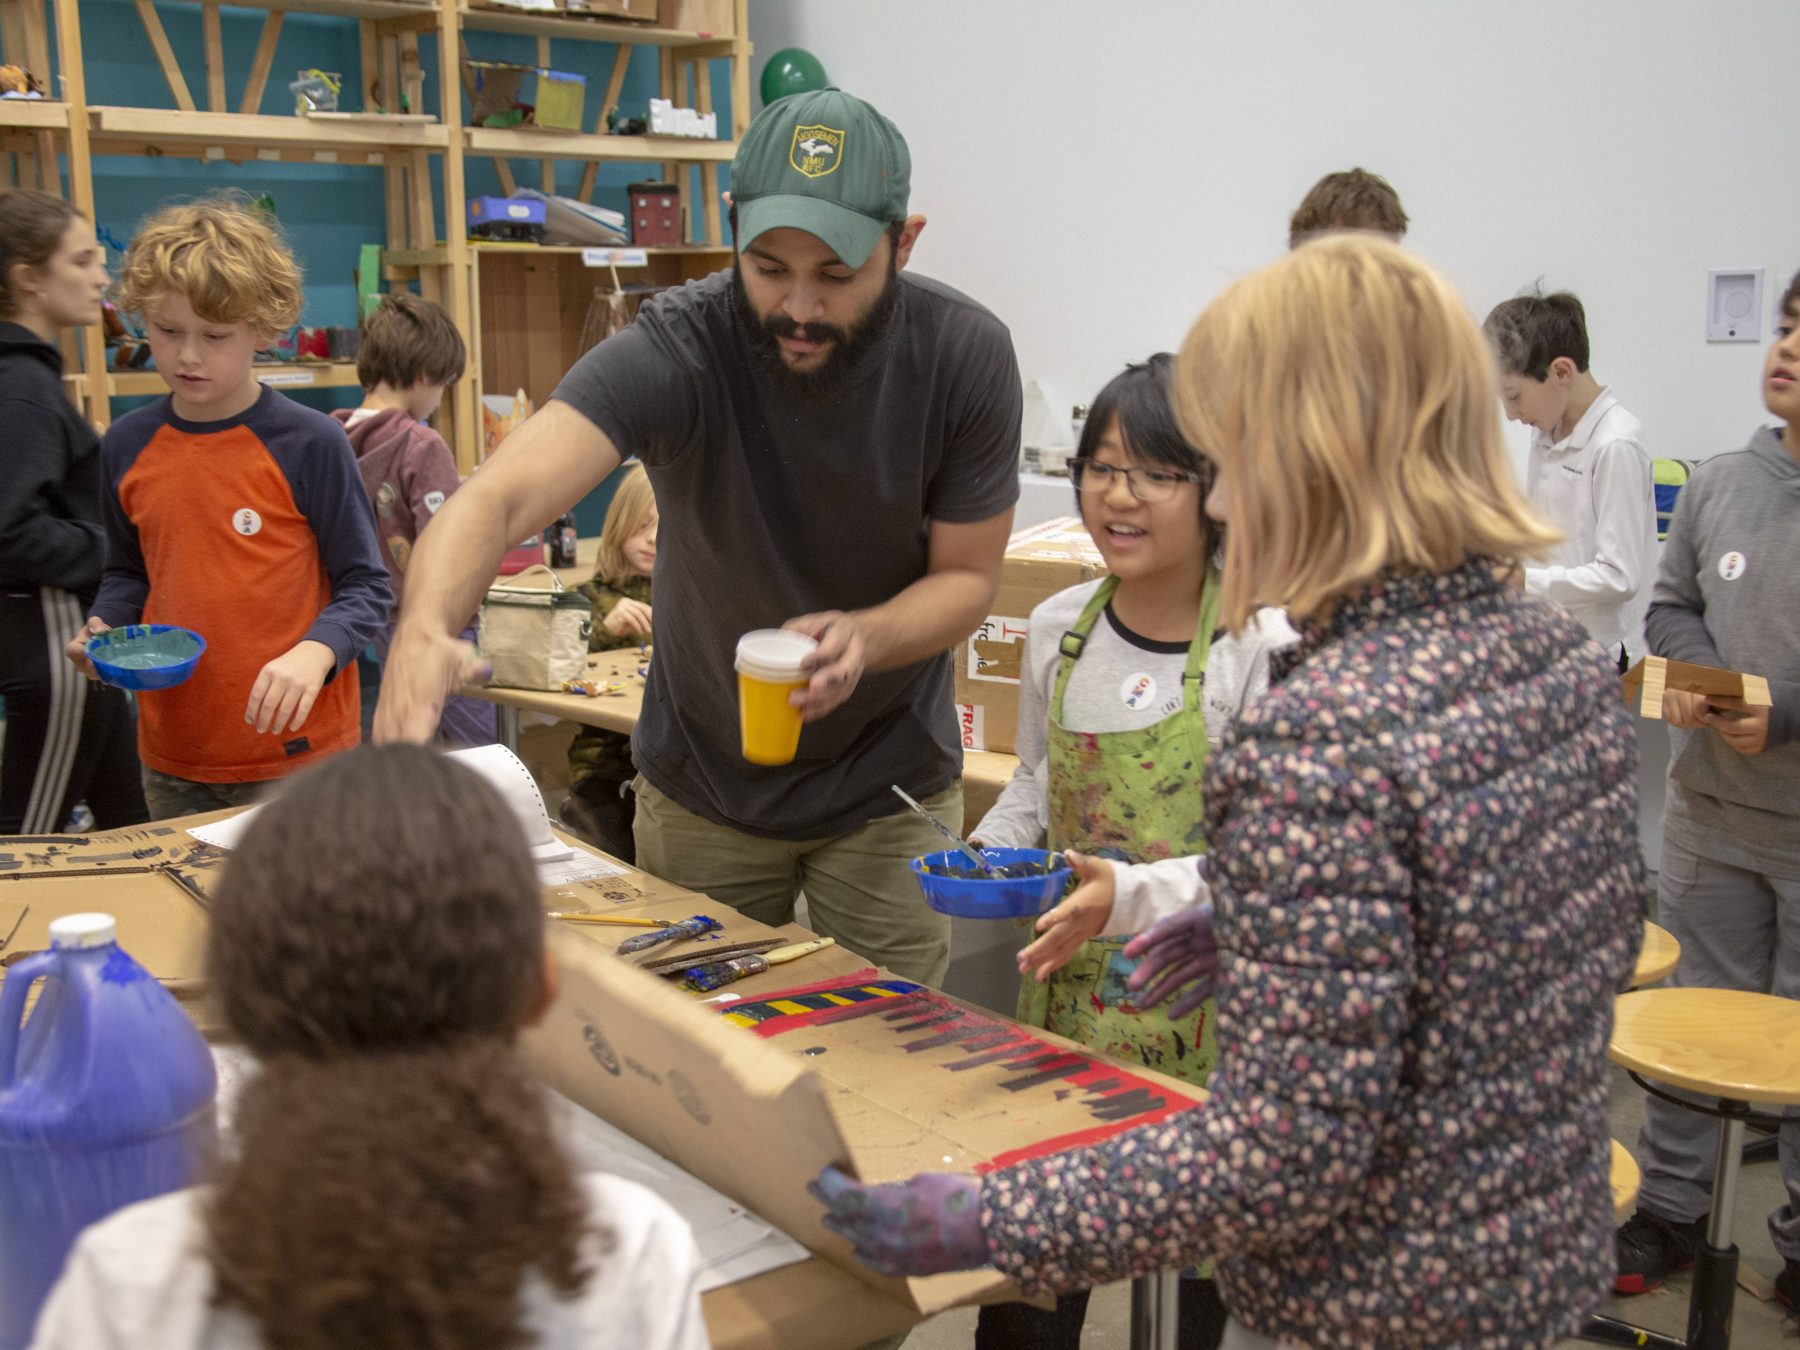 Spend the Summer with Children's Museum of the Arts